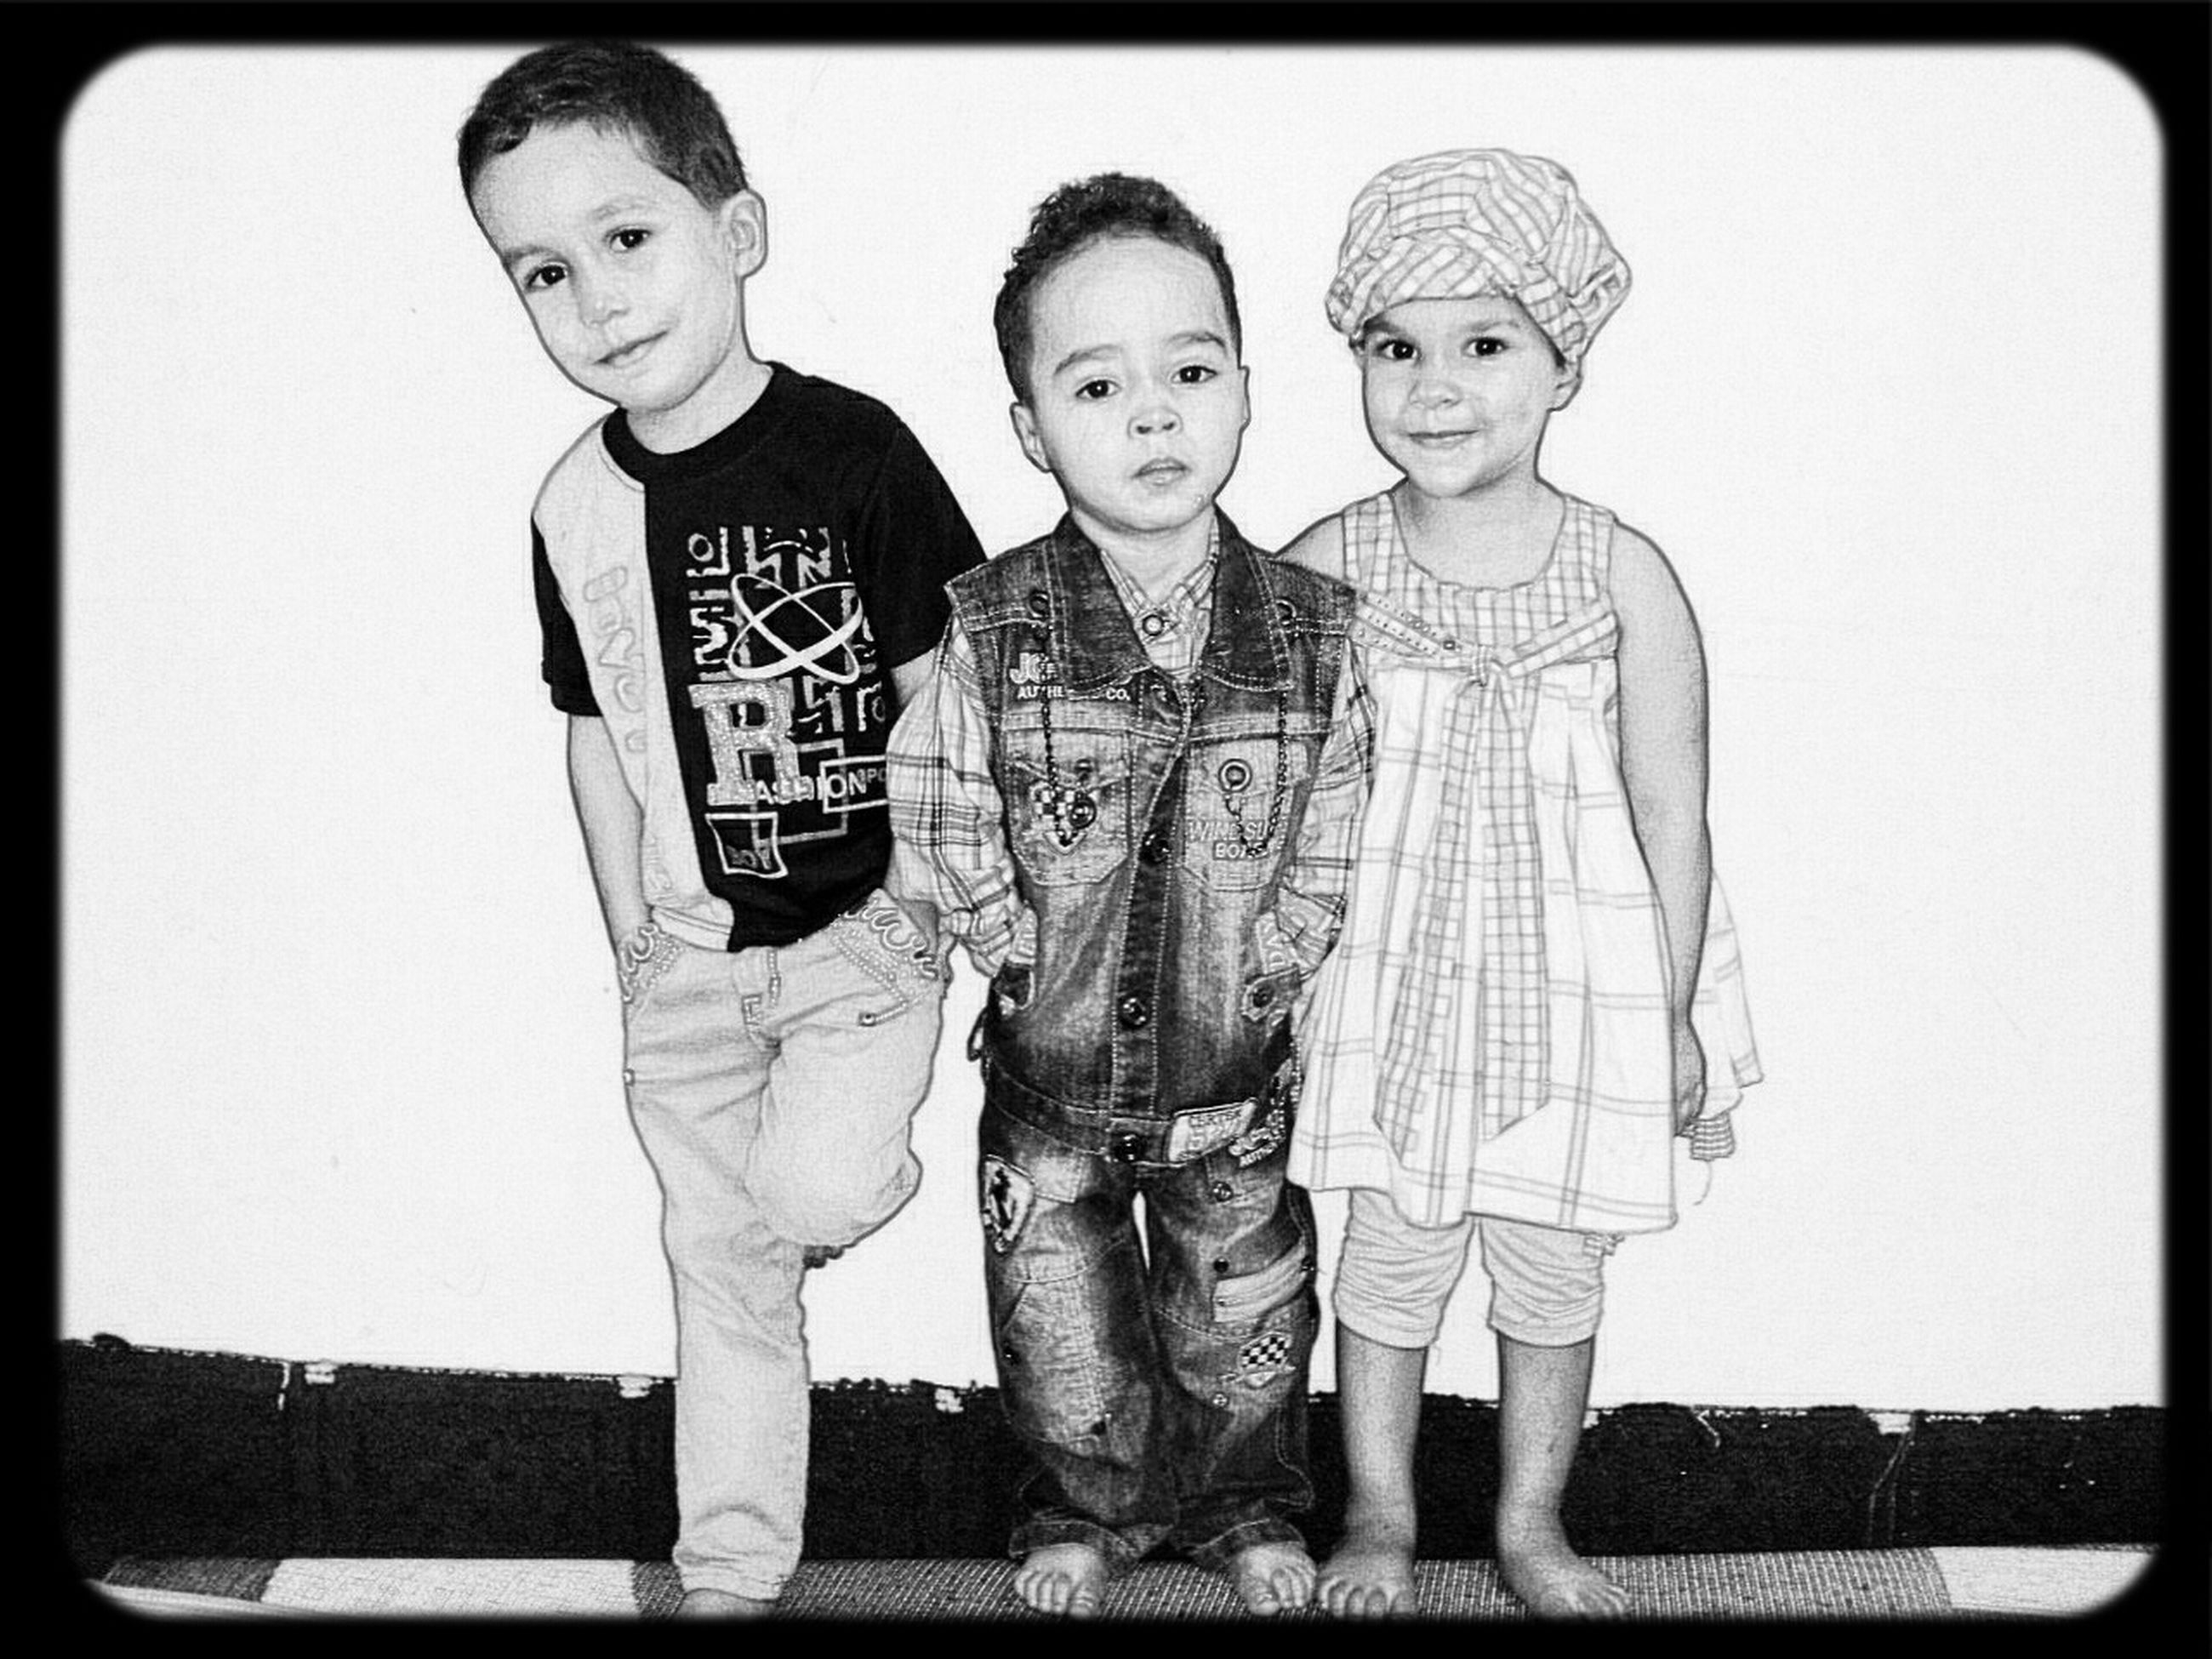 transfer print, togetherness, lifestyles, person, leisure activity, bonding, portrait, auto post production filter, childhood, looking at camera, love, casual clothing, front view, happiness, smiling, boys, elementary age, family